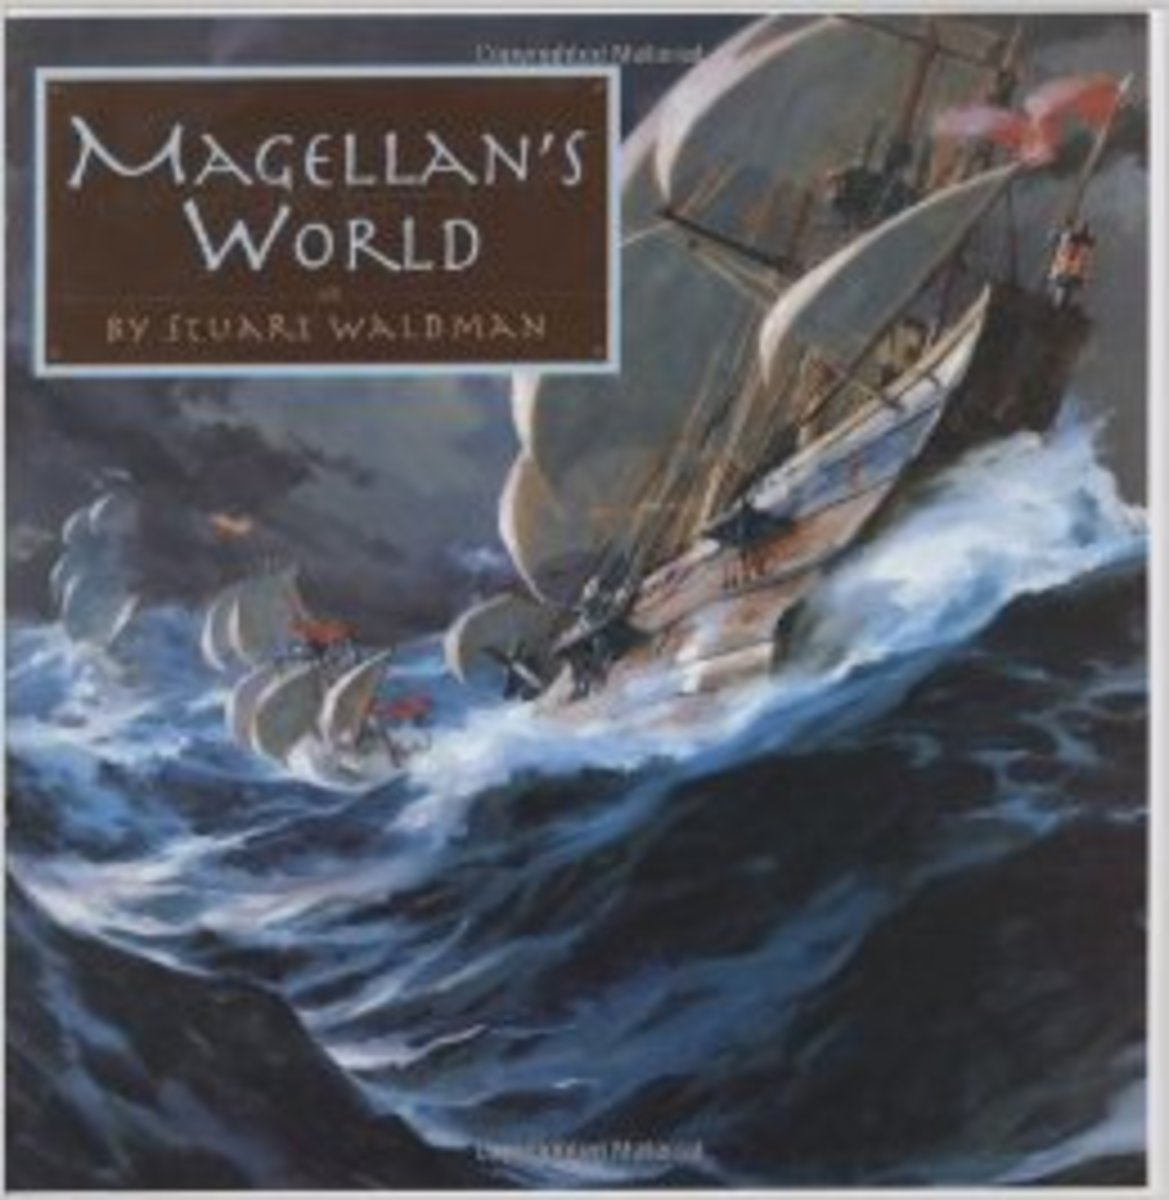 Magellan's World (Great Explorers) by Stuart Waldman